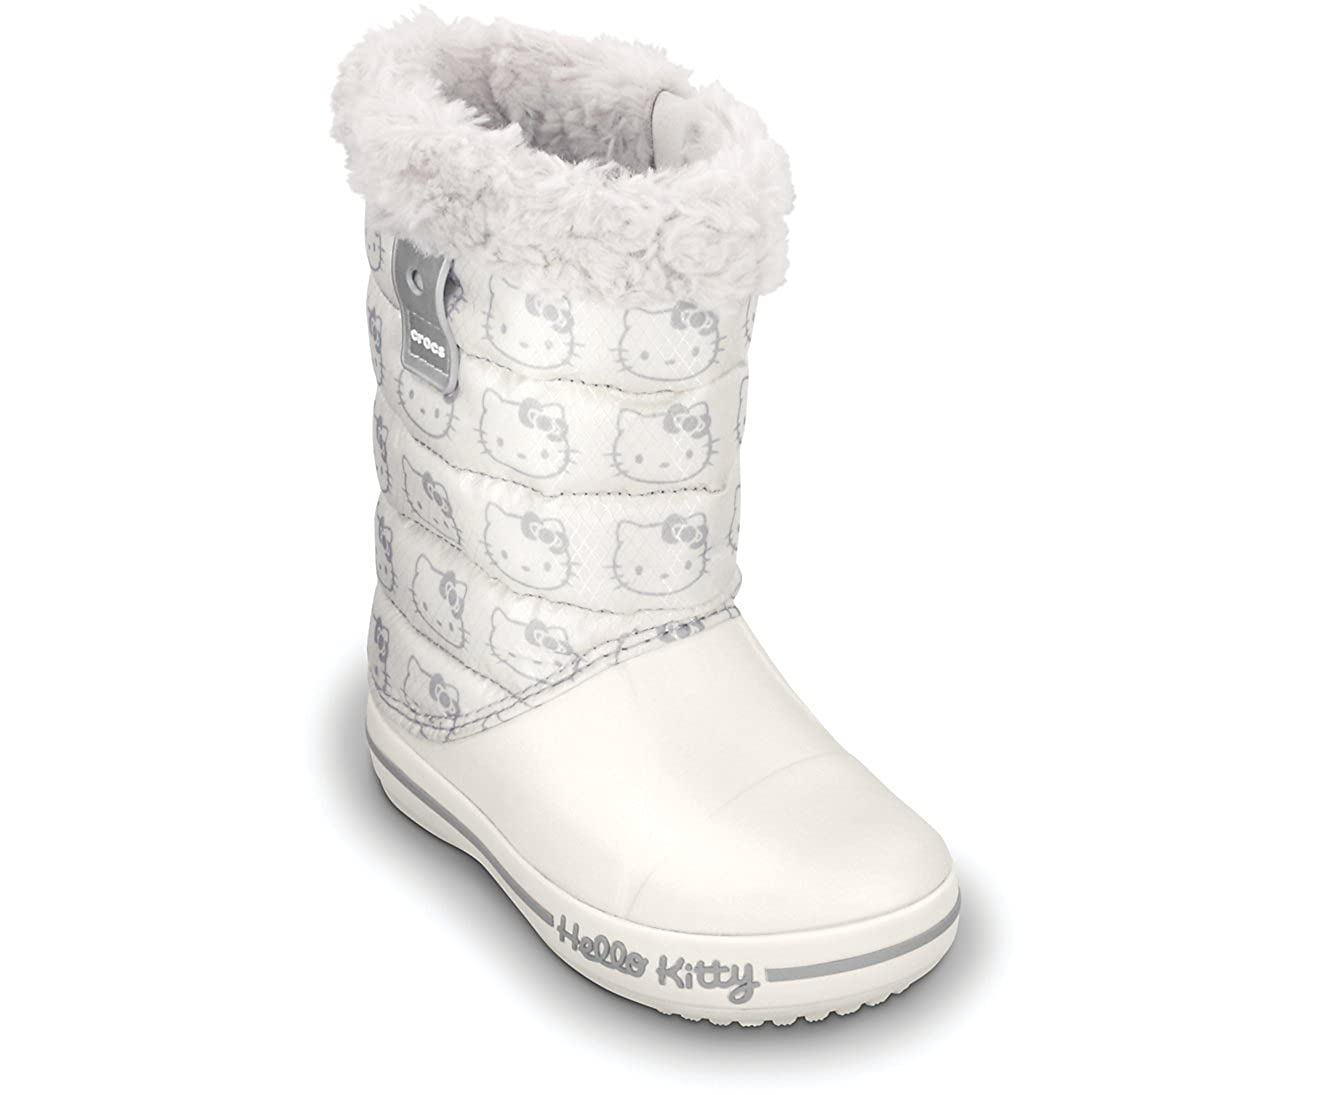 huge selection of a4f72 f5bd6 CROCS Kids - Stiefel HELLO KITTY GUST BOOT - oyster, Größe ...